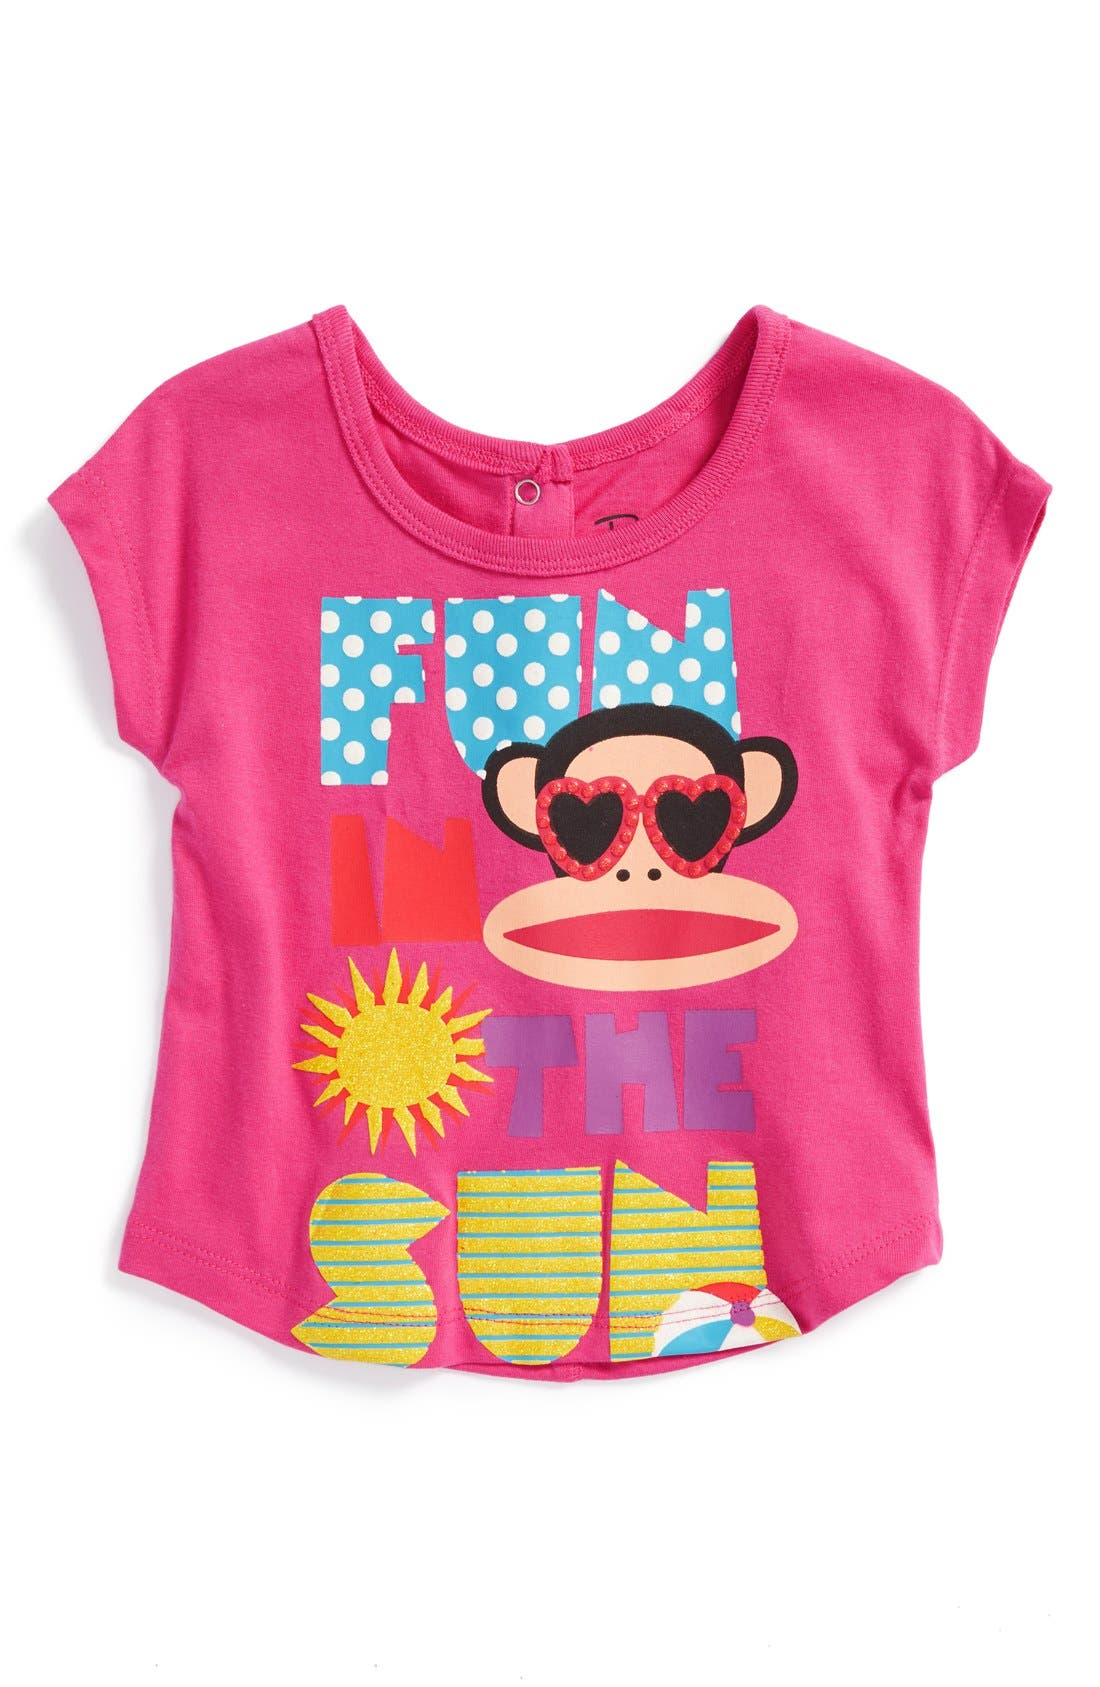 Alternate Image 1 Selected - Paul Frank 'Fun in the Sun' Graphic Tee (Baby Girls)